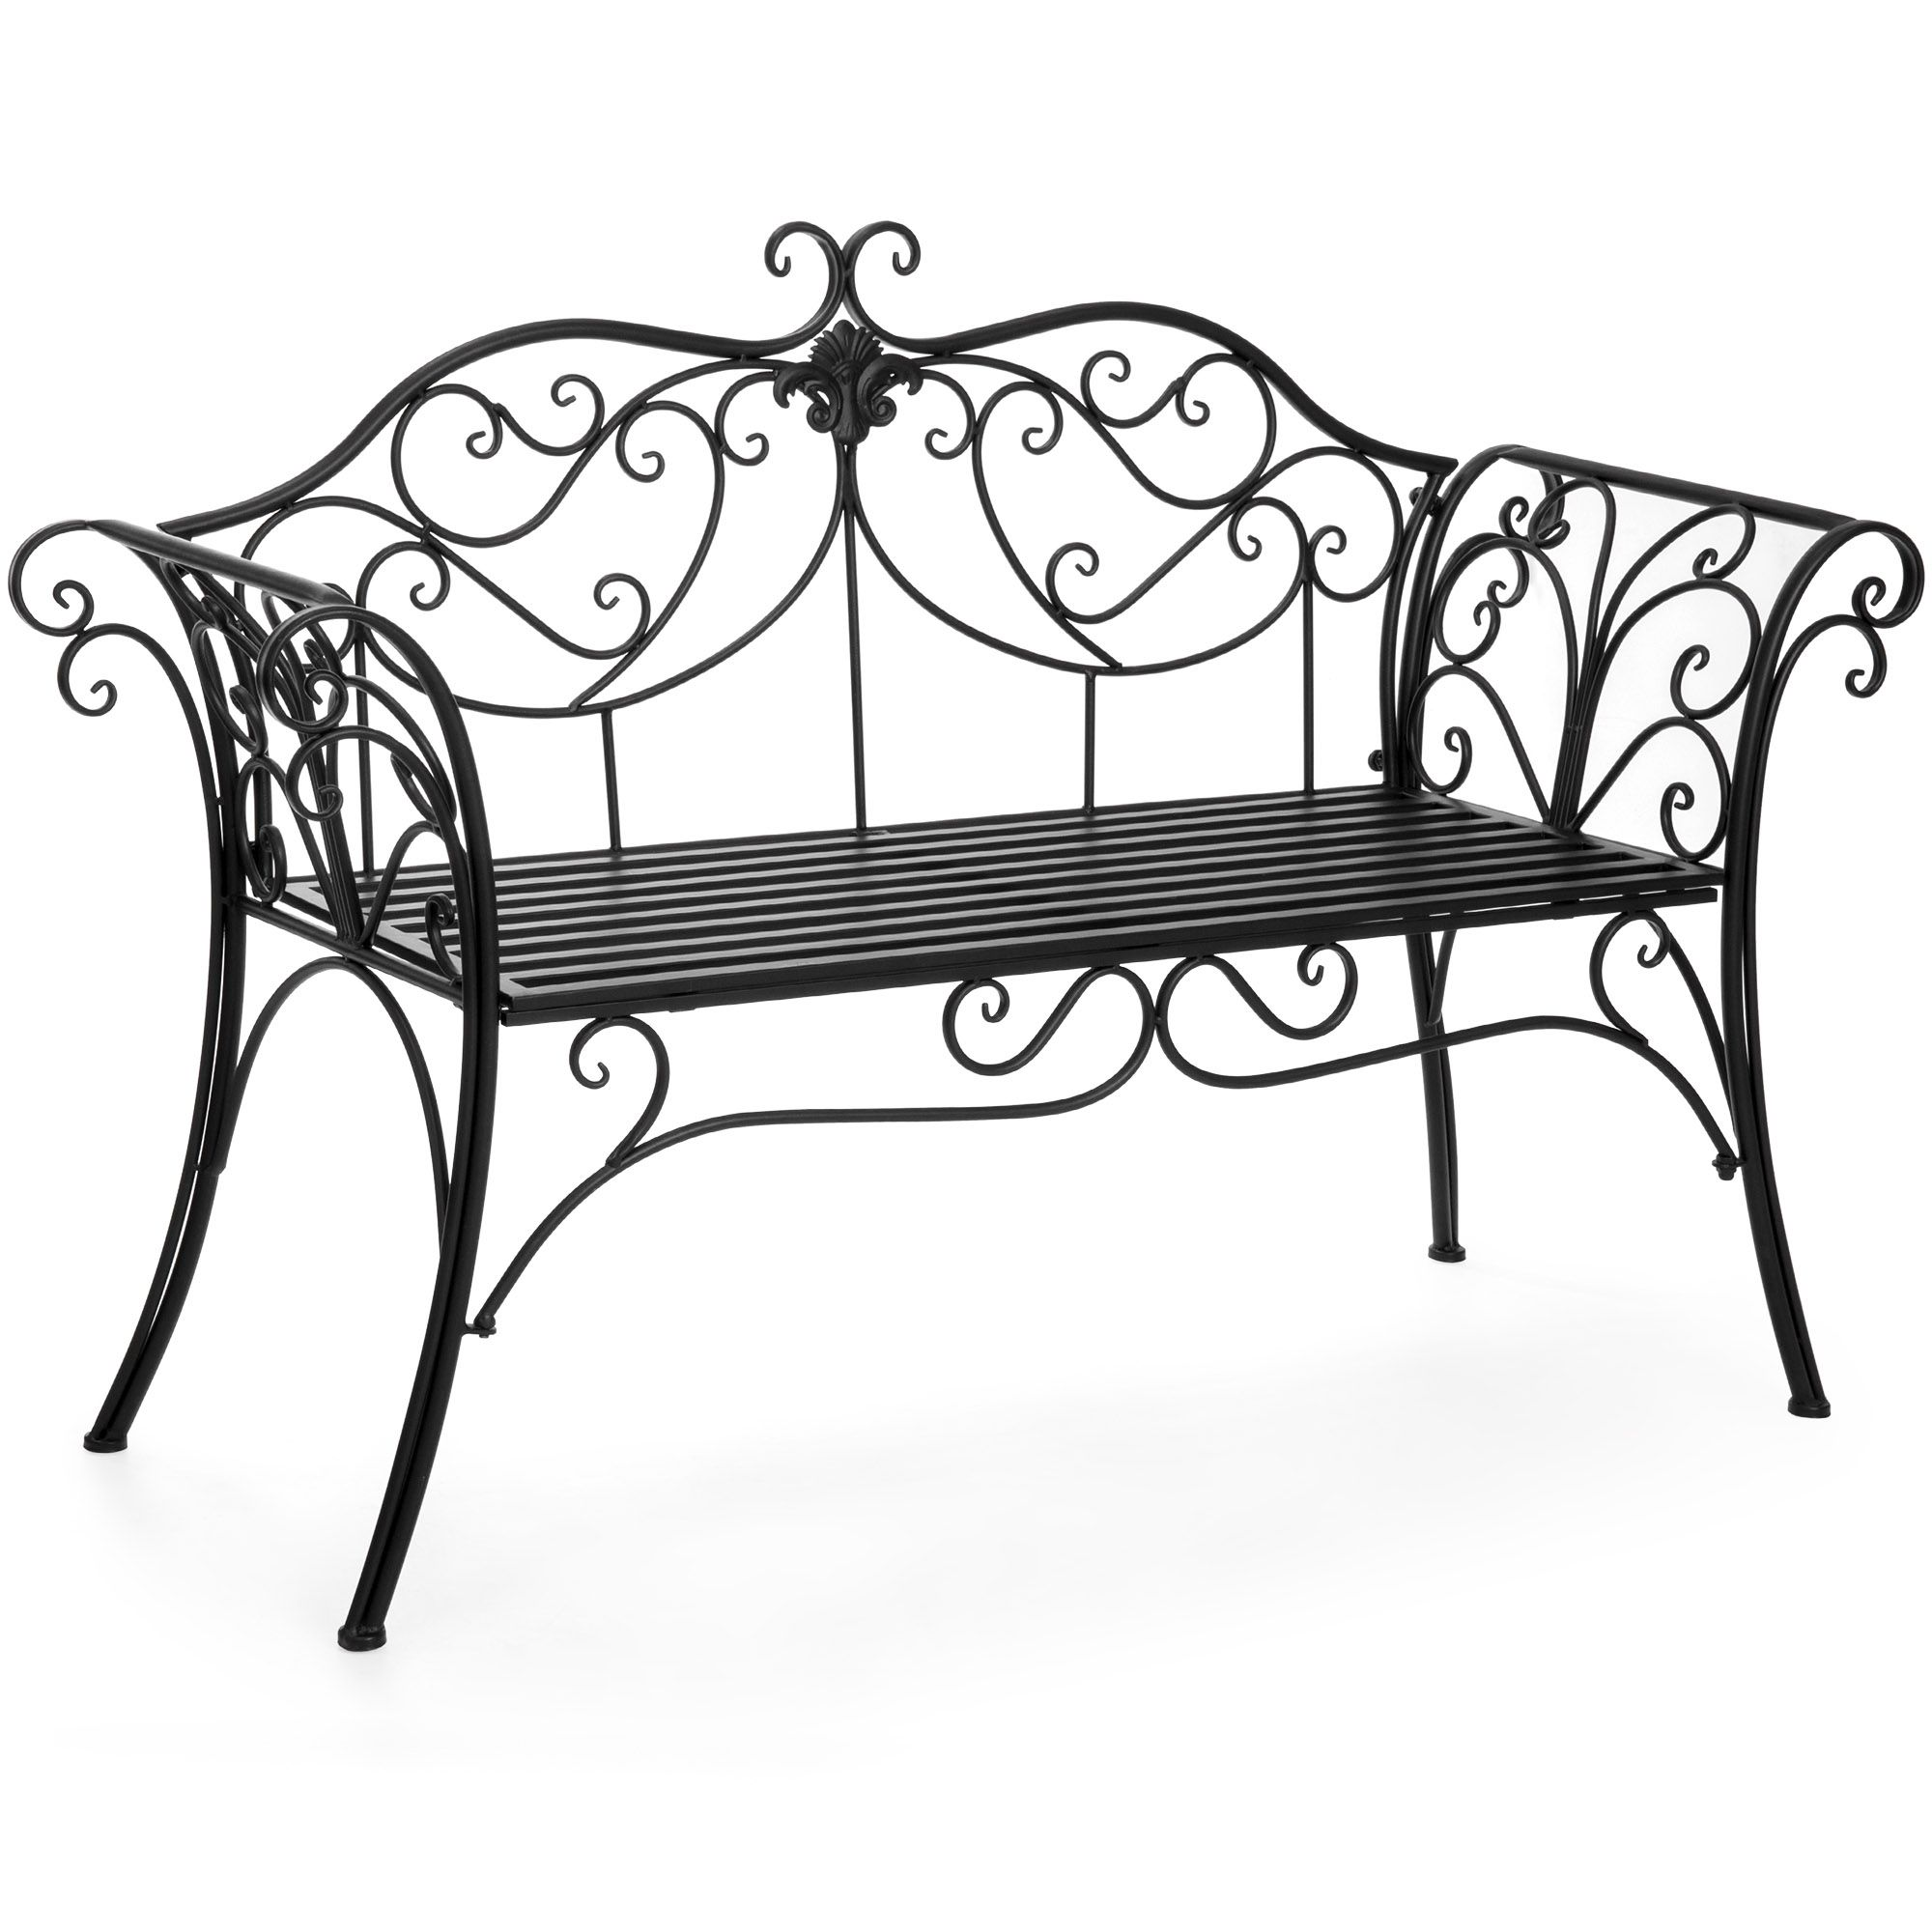 Patio Garden Metal Patio Furniture Metal Decor